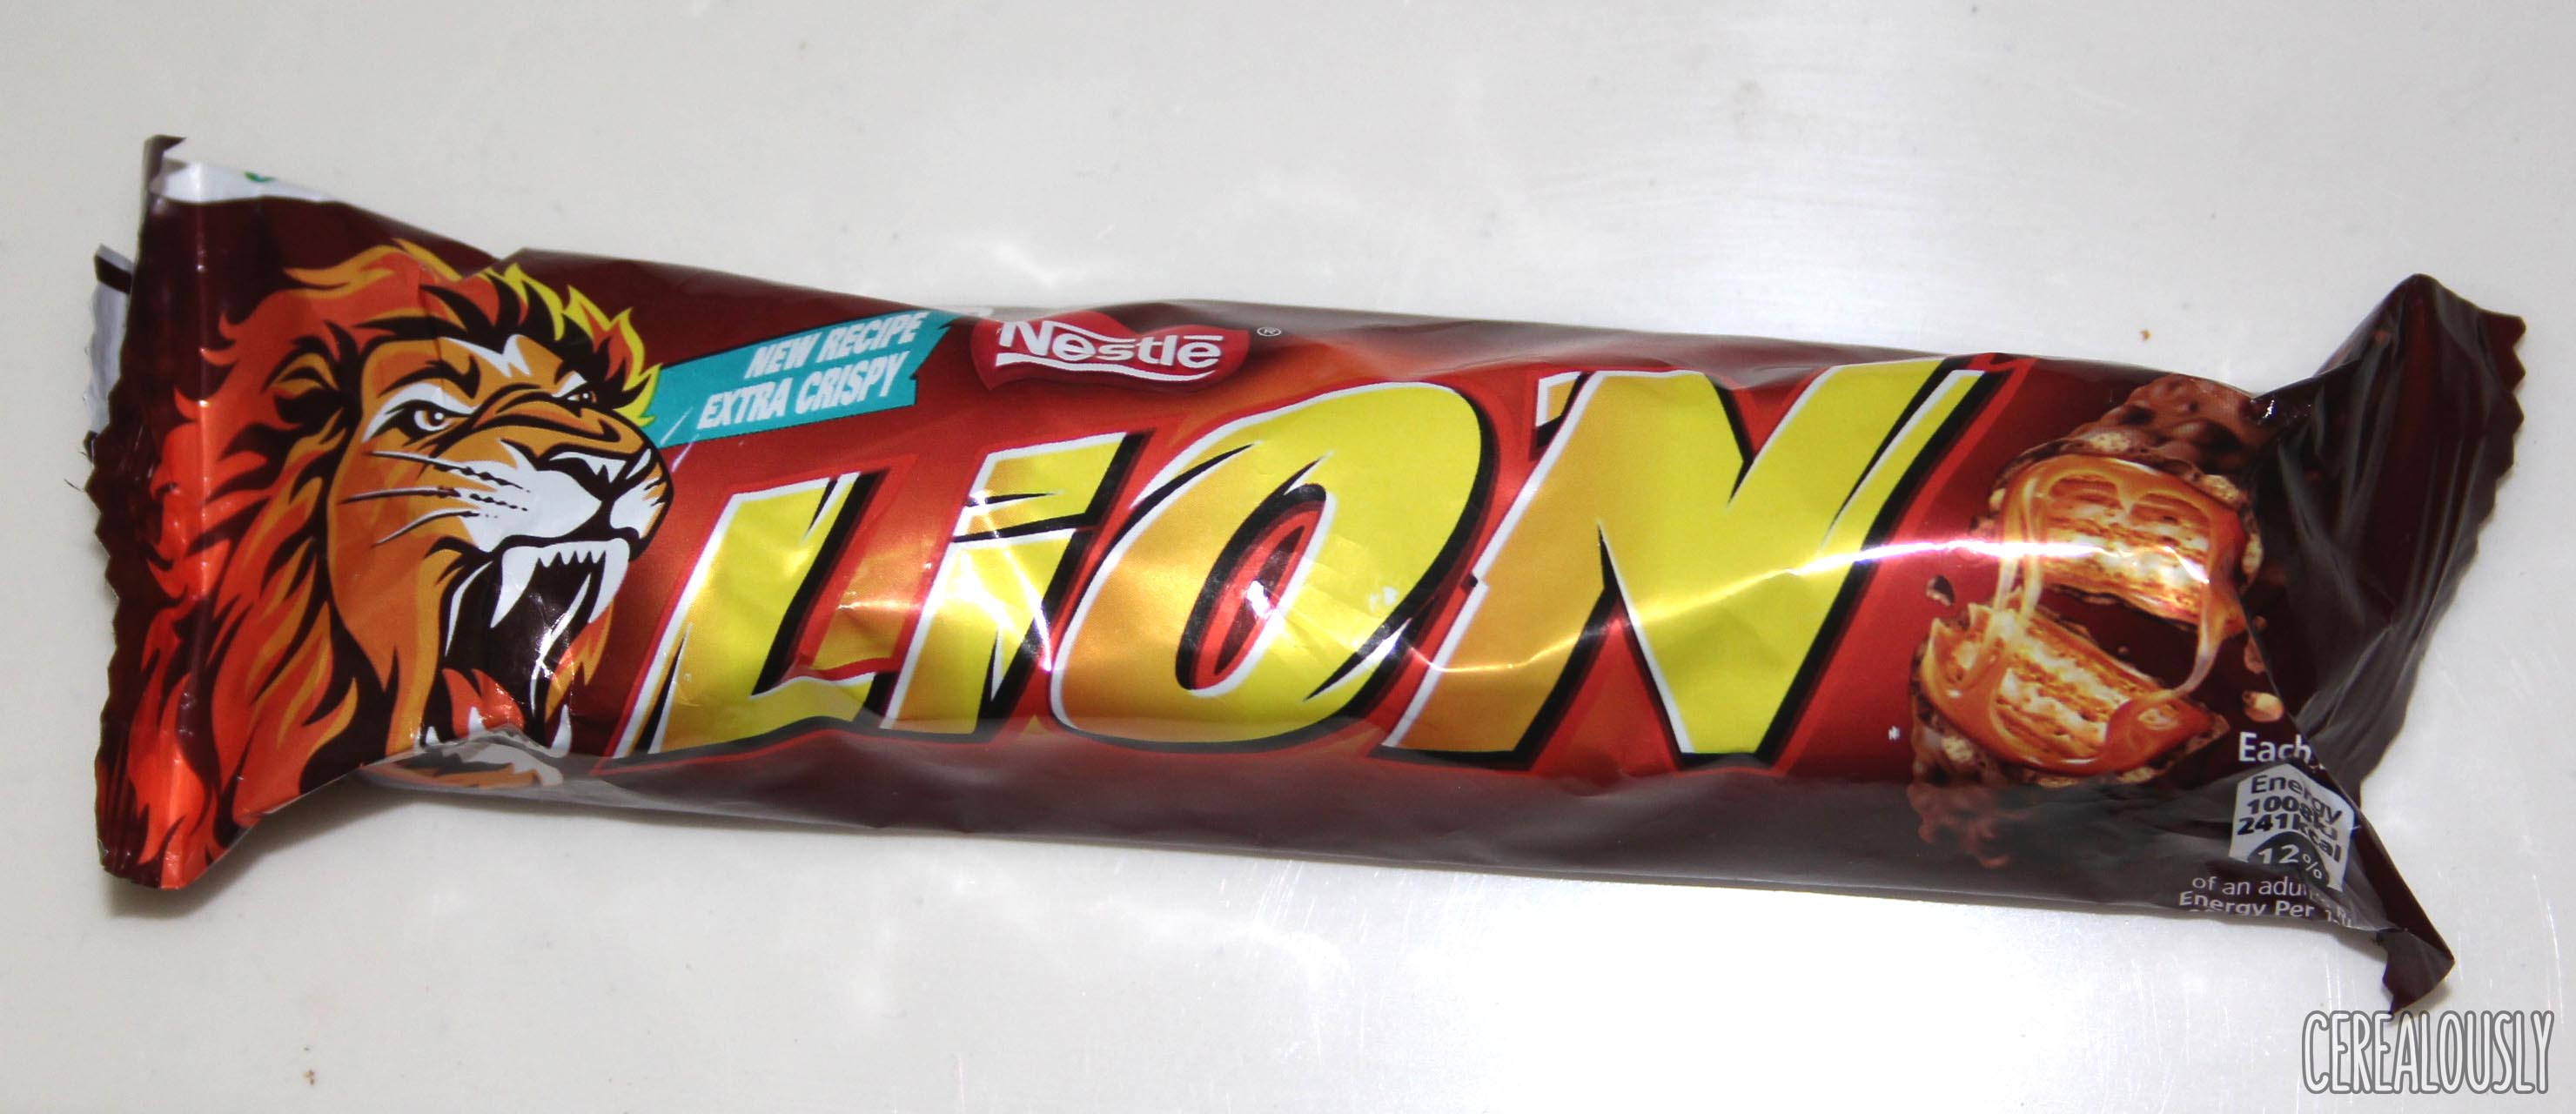 Nestle Lion Cereal Bar Wrapper Review